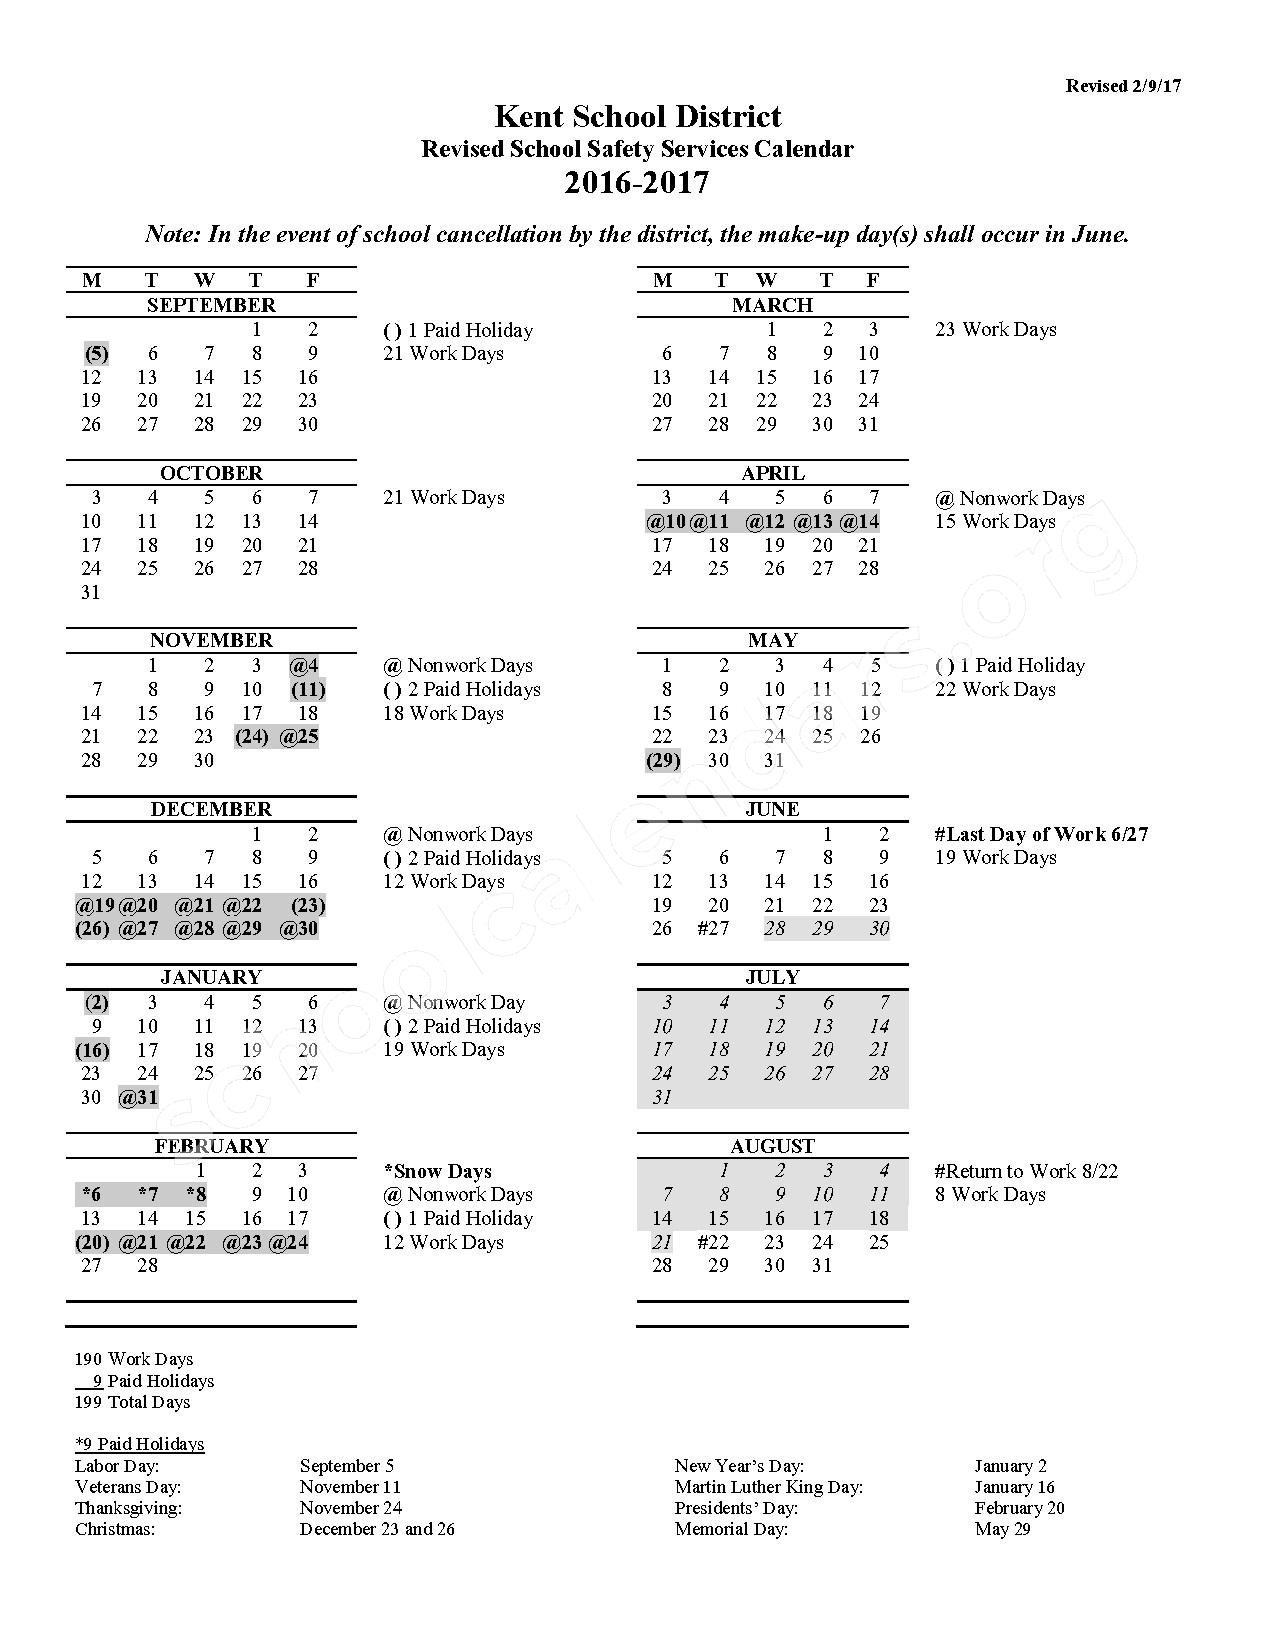 2016 - 2017 Safety Services Calendar (Revised) – Meadow Ridge Elementary School – page 1